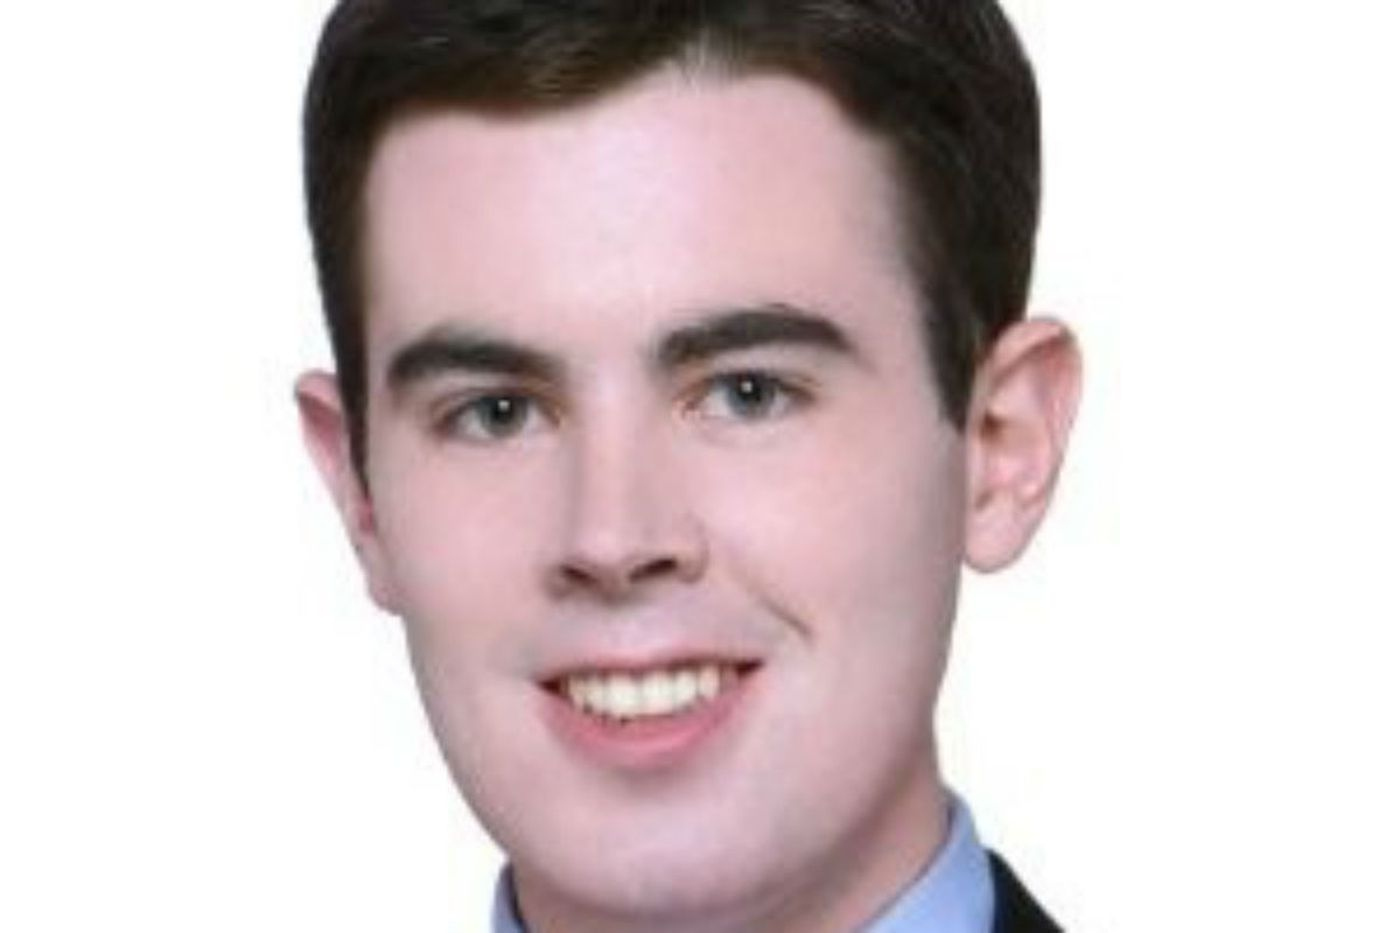 Conor Patrick Devlin, 25, accomplished law student with a passion for Chinese culture